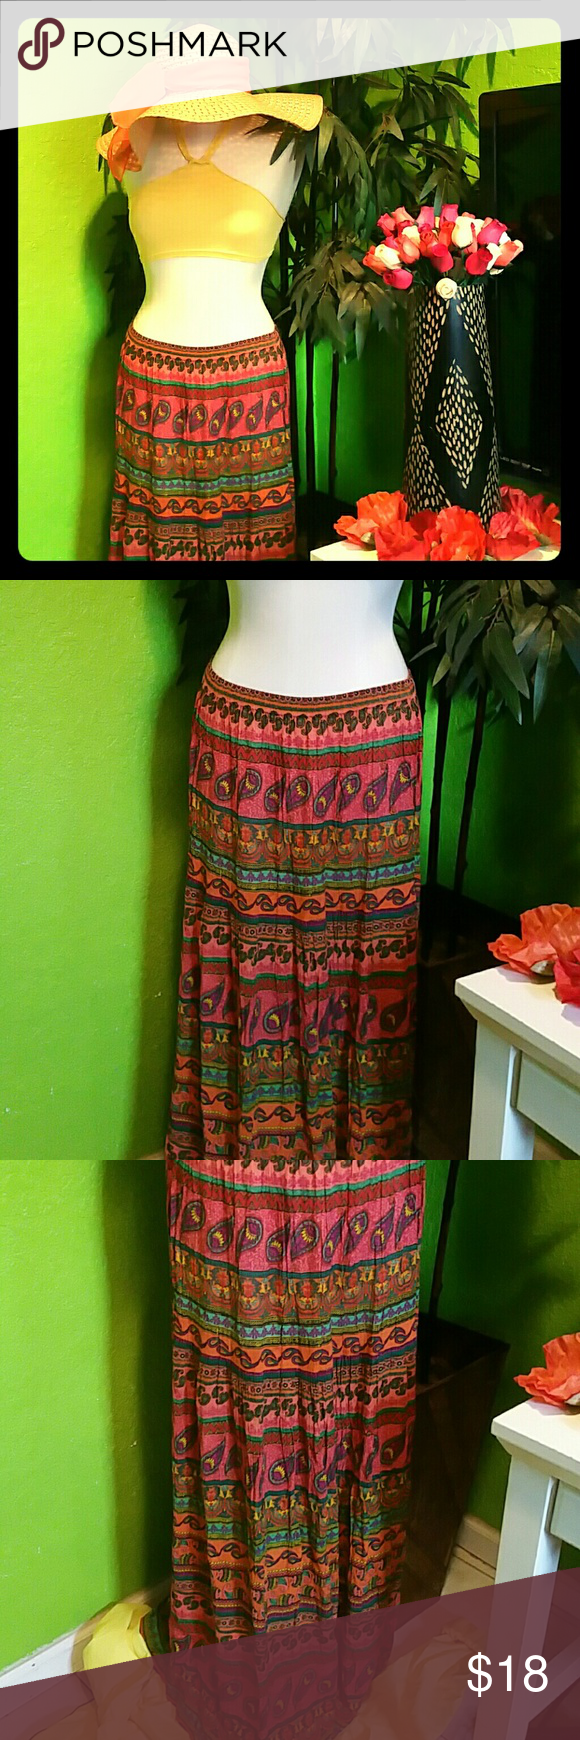 """Awesome Boho Look / Colorful Paisley Print Skirt S This beautiful maxi skirt can be worn to fit at the waist or a little below the waist....The striking colors & paisley print combination, brings this skirt to life!!!! This was purchased from Macys Junior Department..... 100% Rayon Shirred waistband with elastic. Length- 39""""  Hat & Top not included.. Planet Gold Skirts Maxi"""